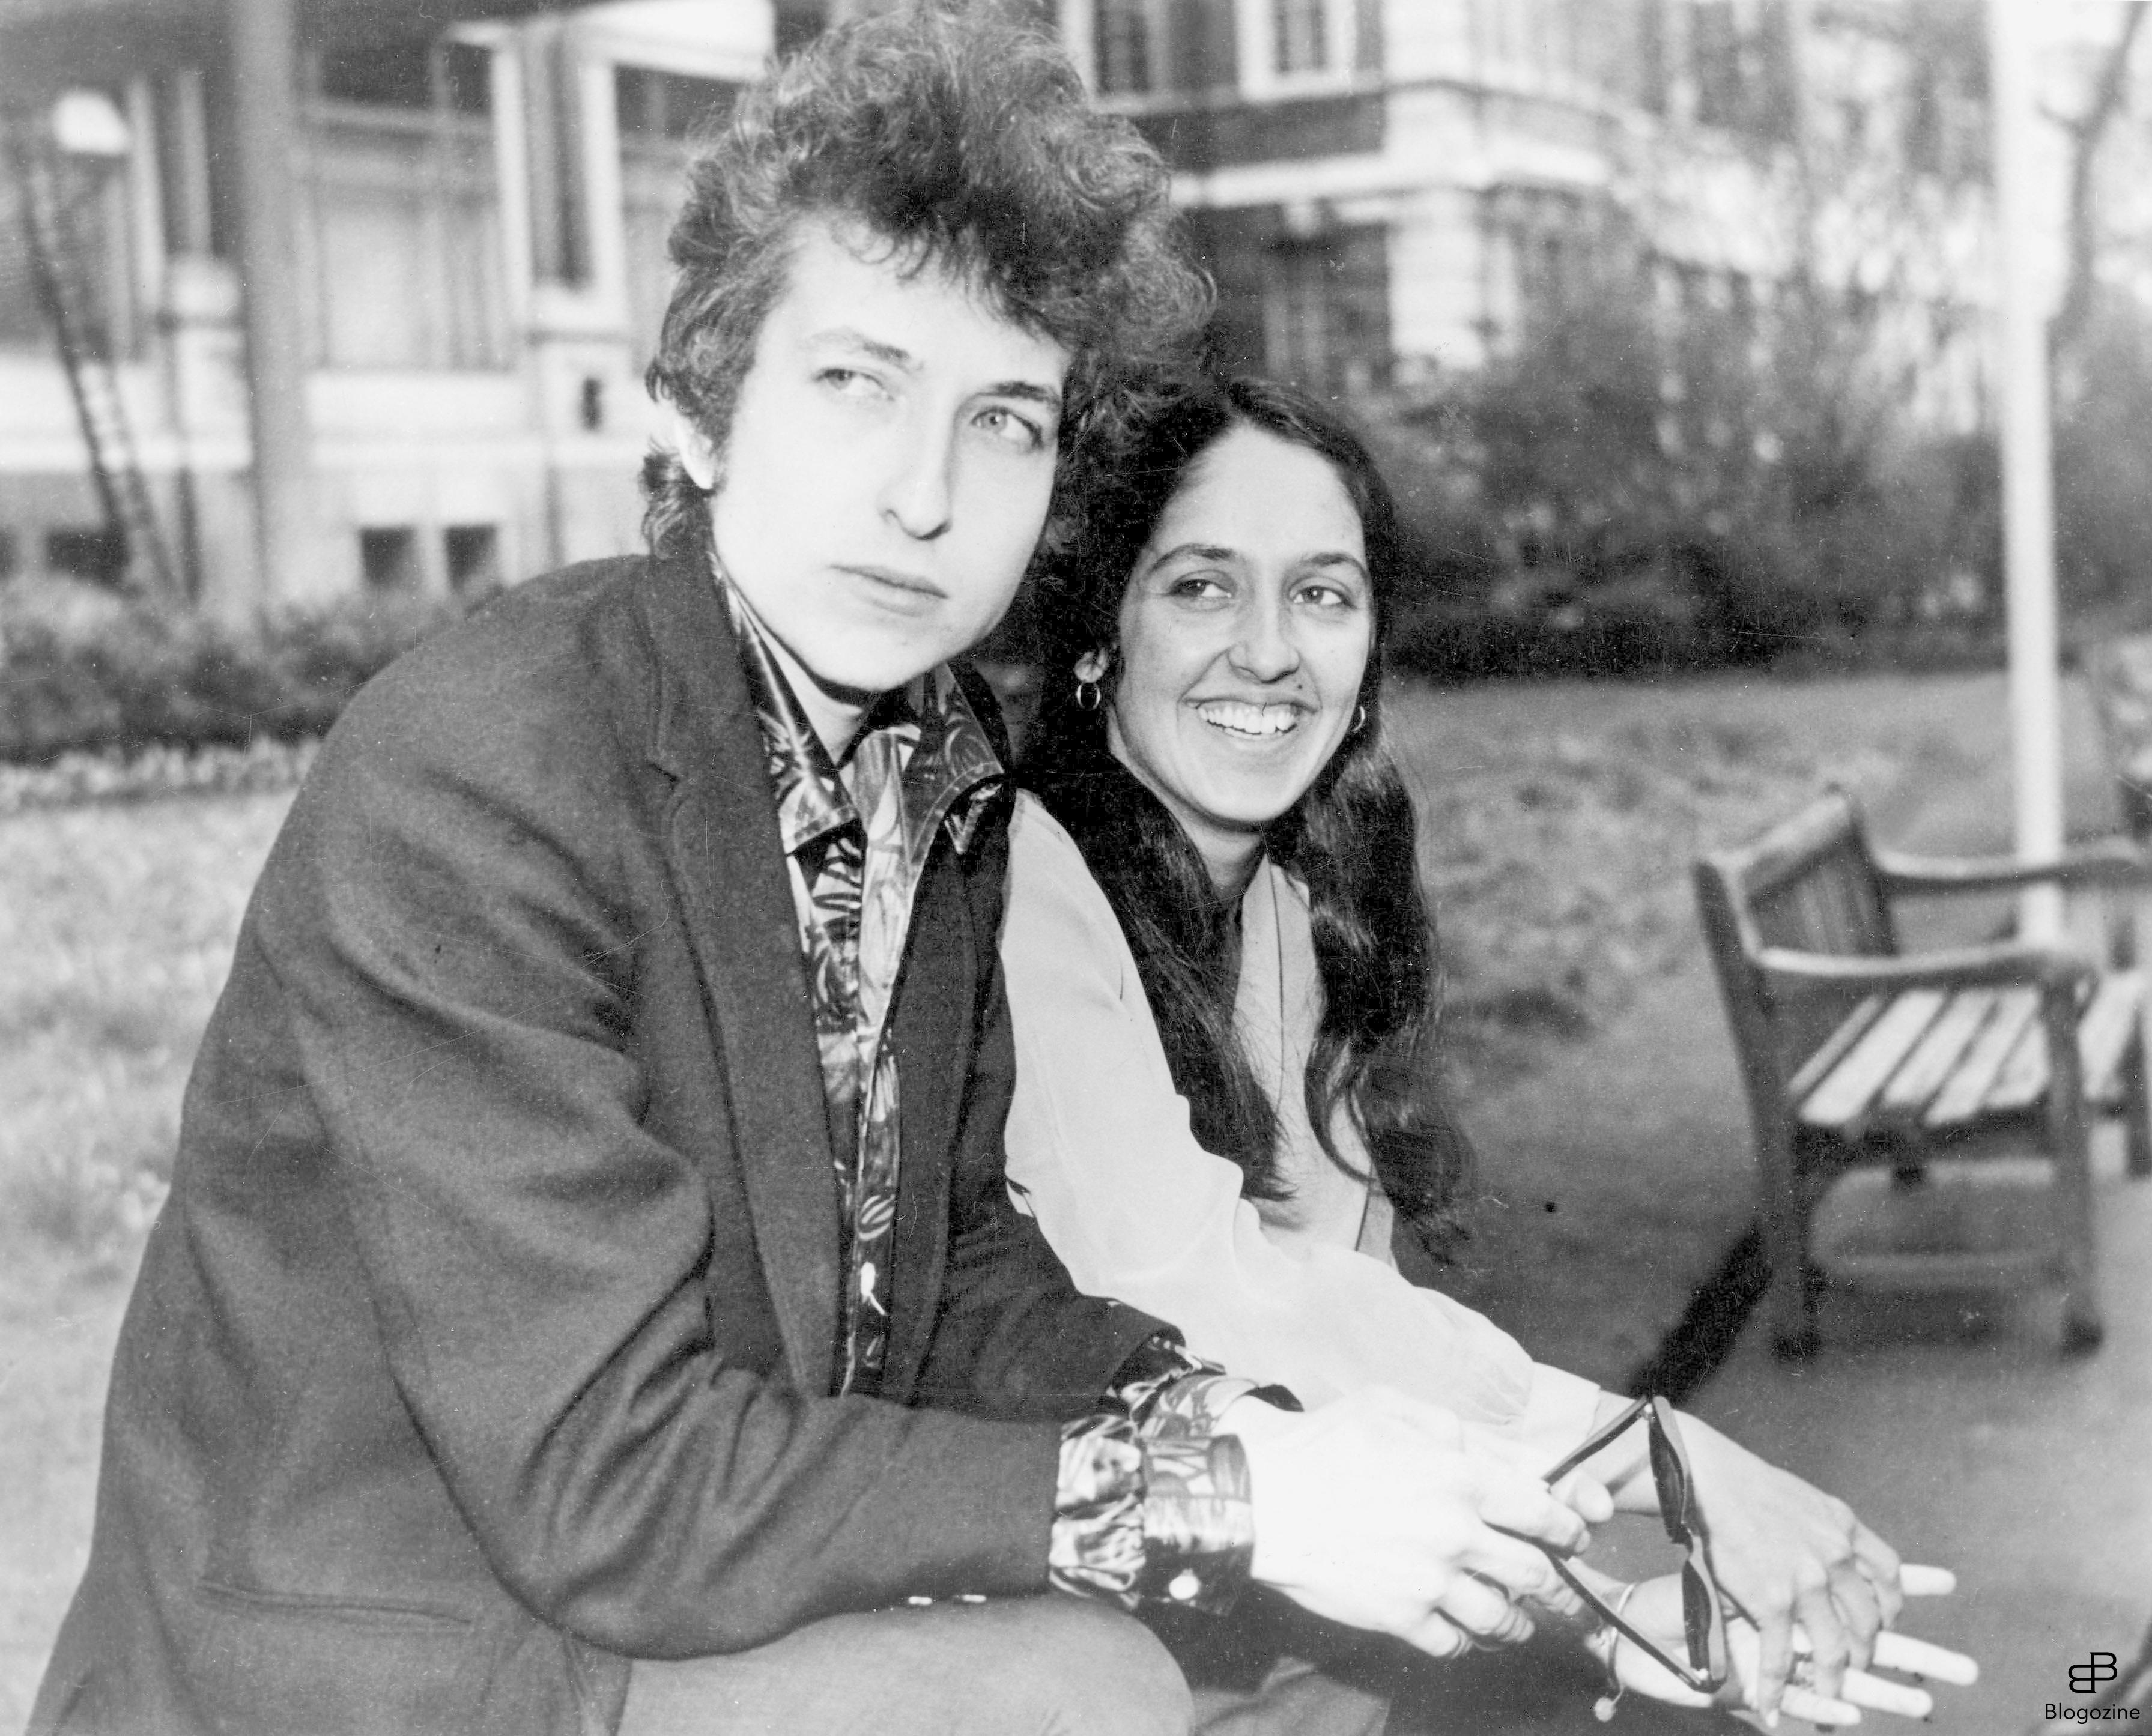 290801 27th April 1965: American folk singers, Bob Dylan and Joan Baez at the Savoy in London. Bob is on tour in the UK. Photo: Uppa.co.uk Code: 4034/095082_4265 COPYRIGHT STELLA PICTURES